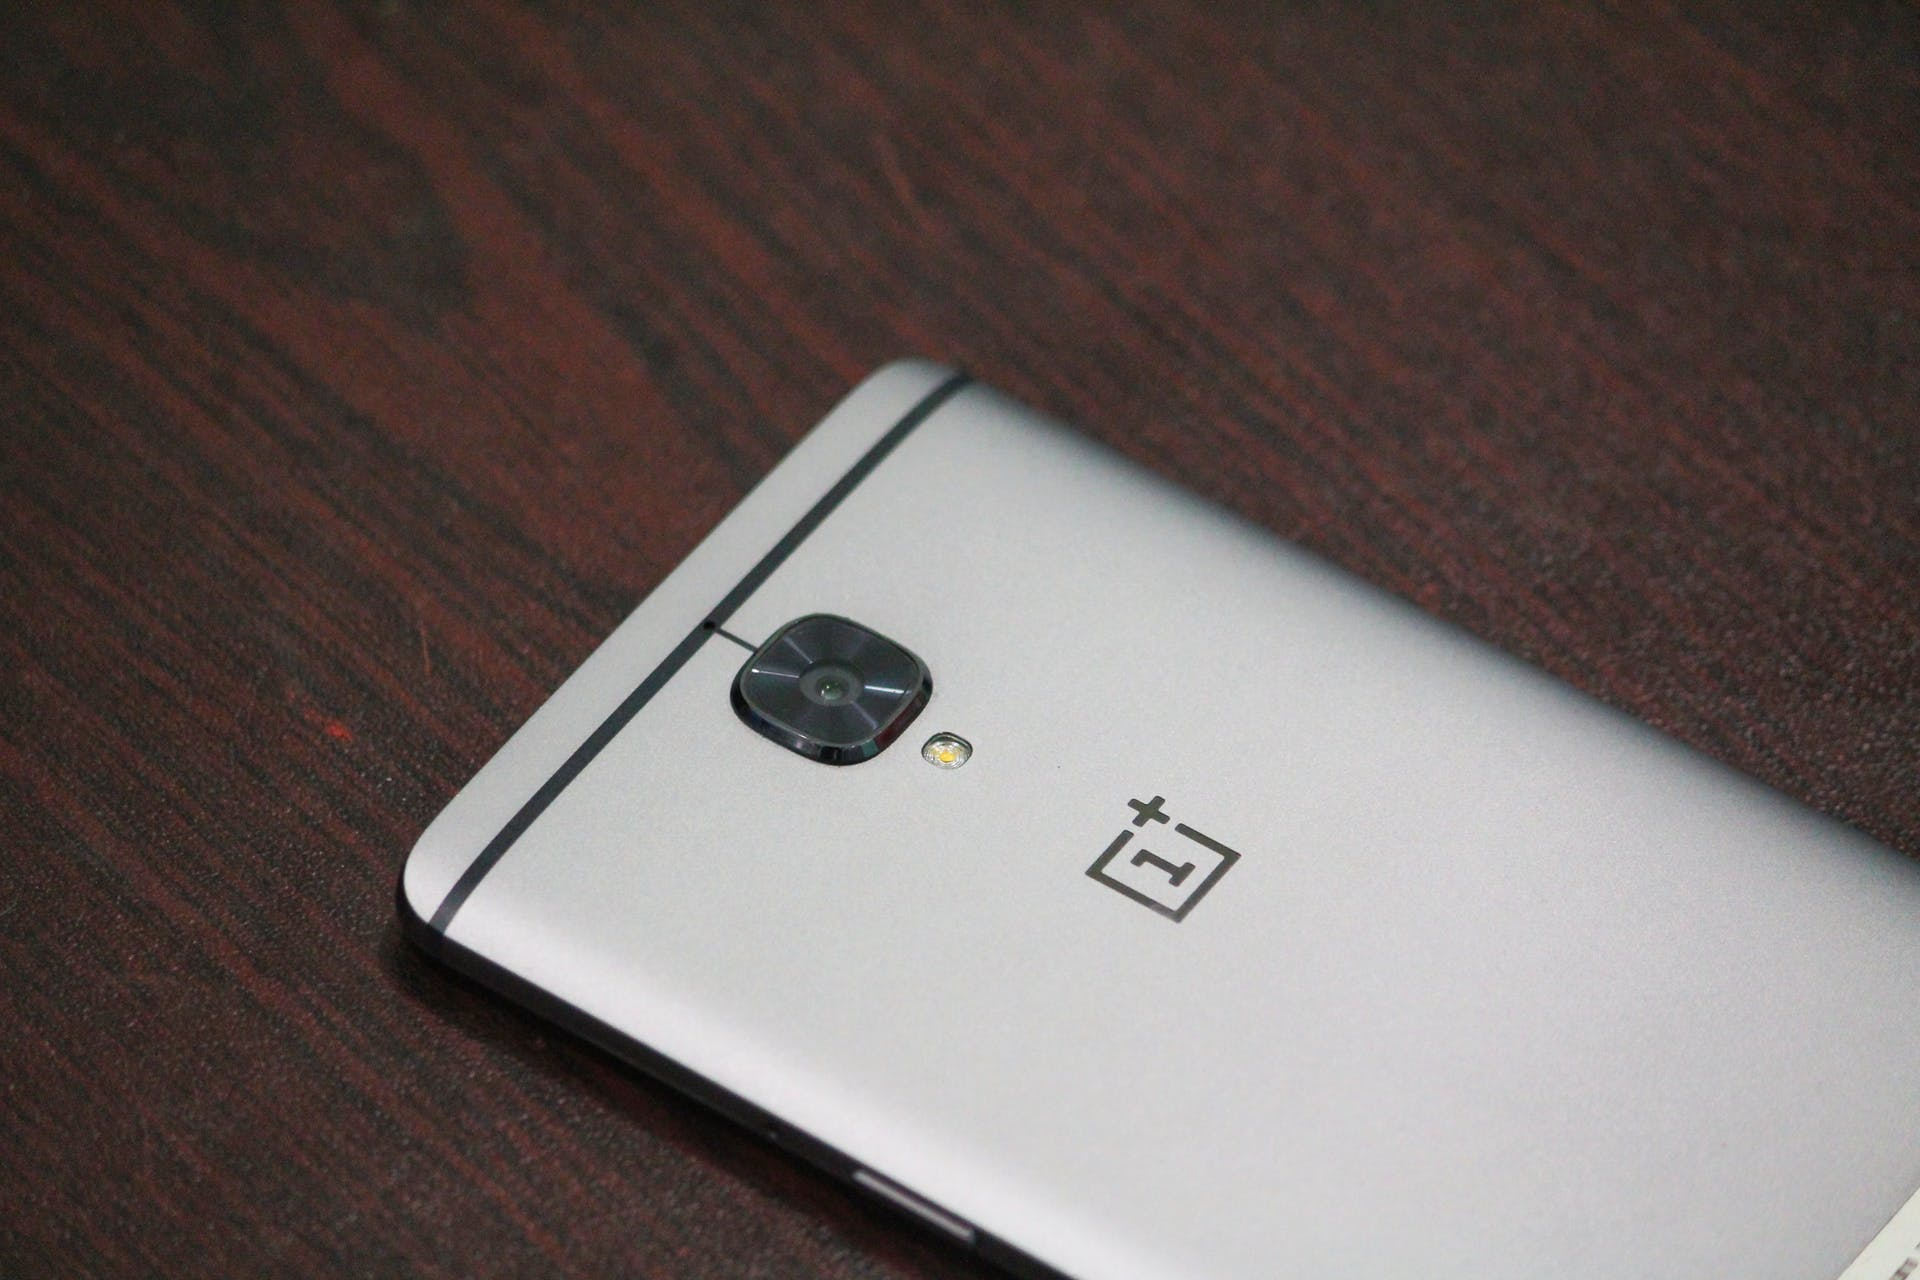 oneplus 3t close shot smartphone phone mobile